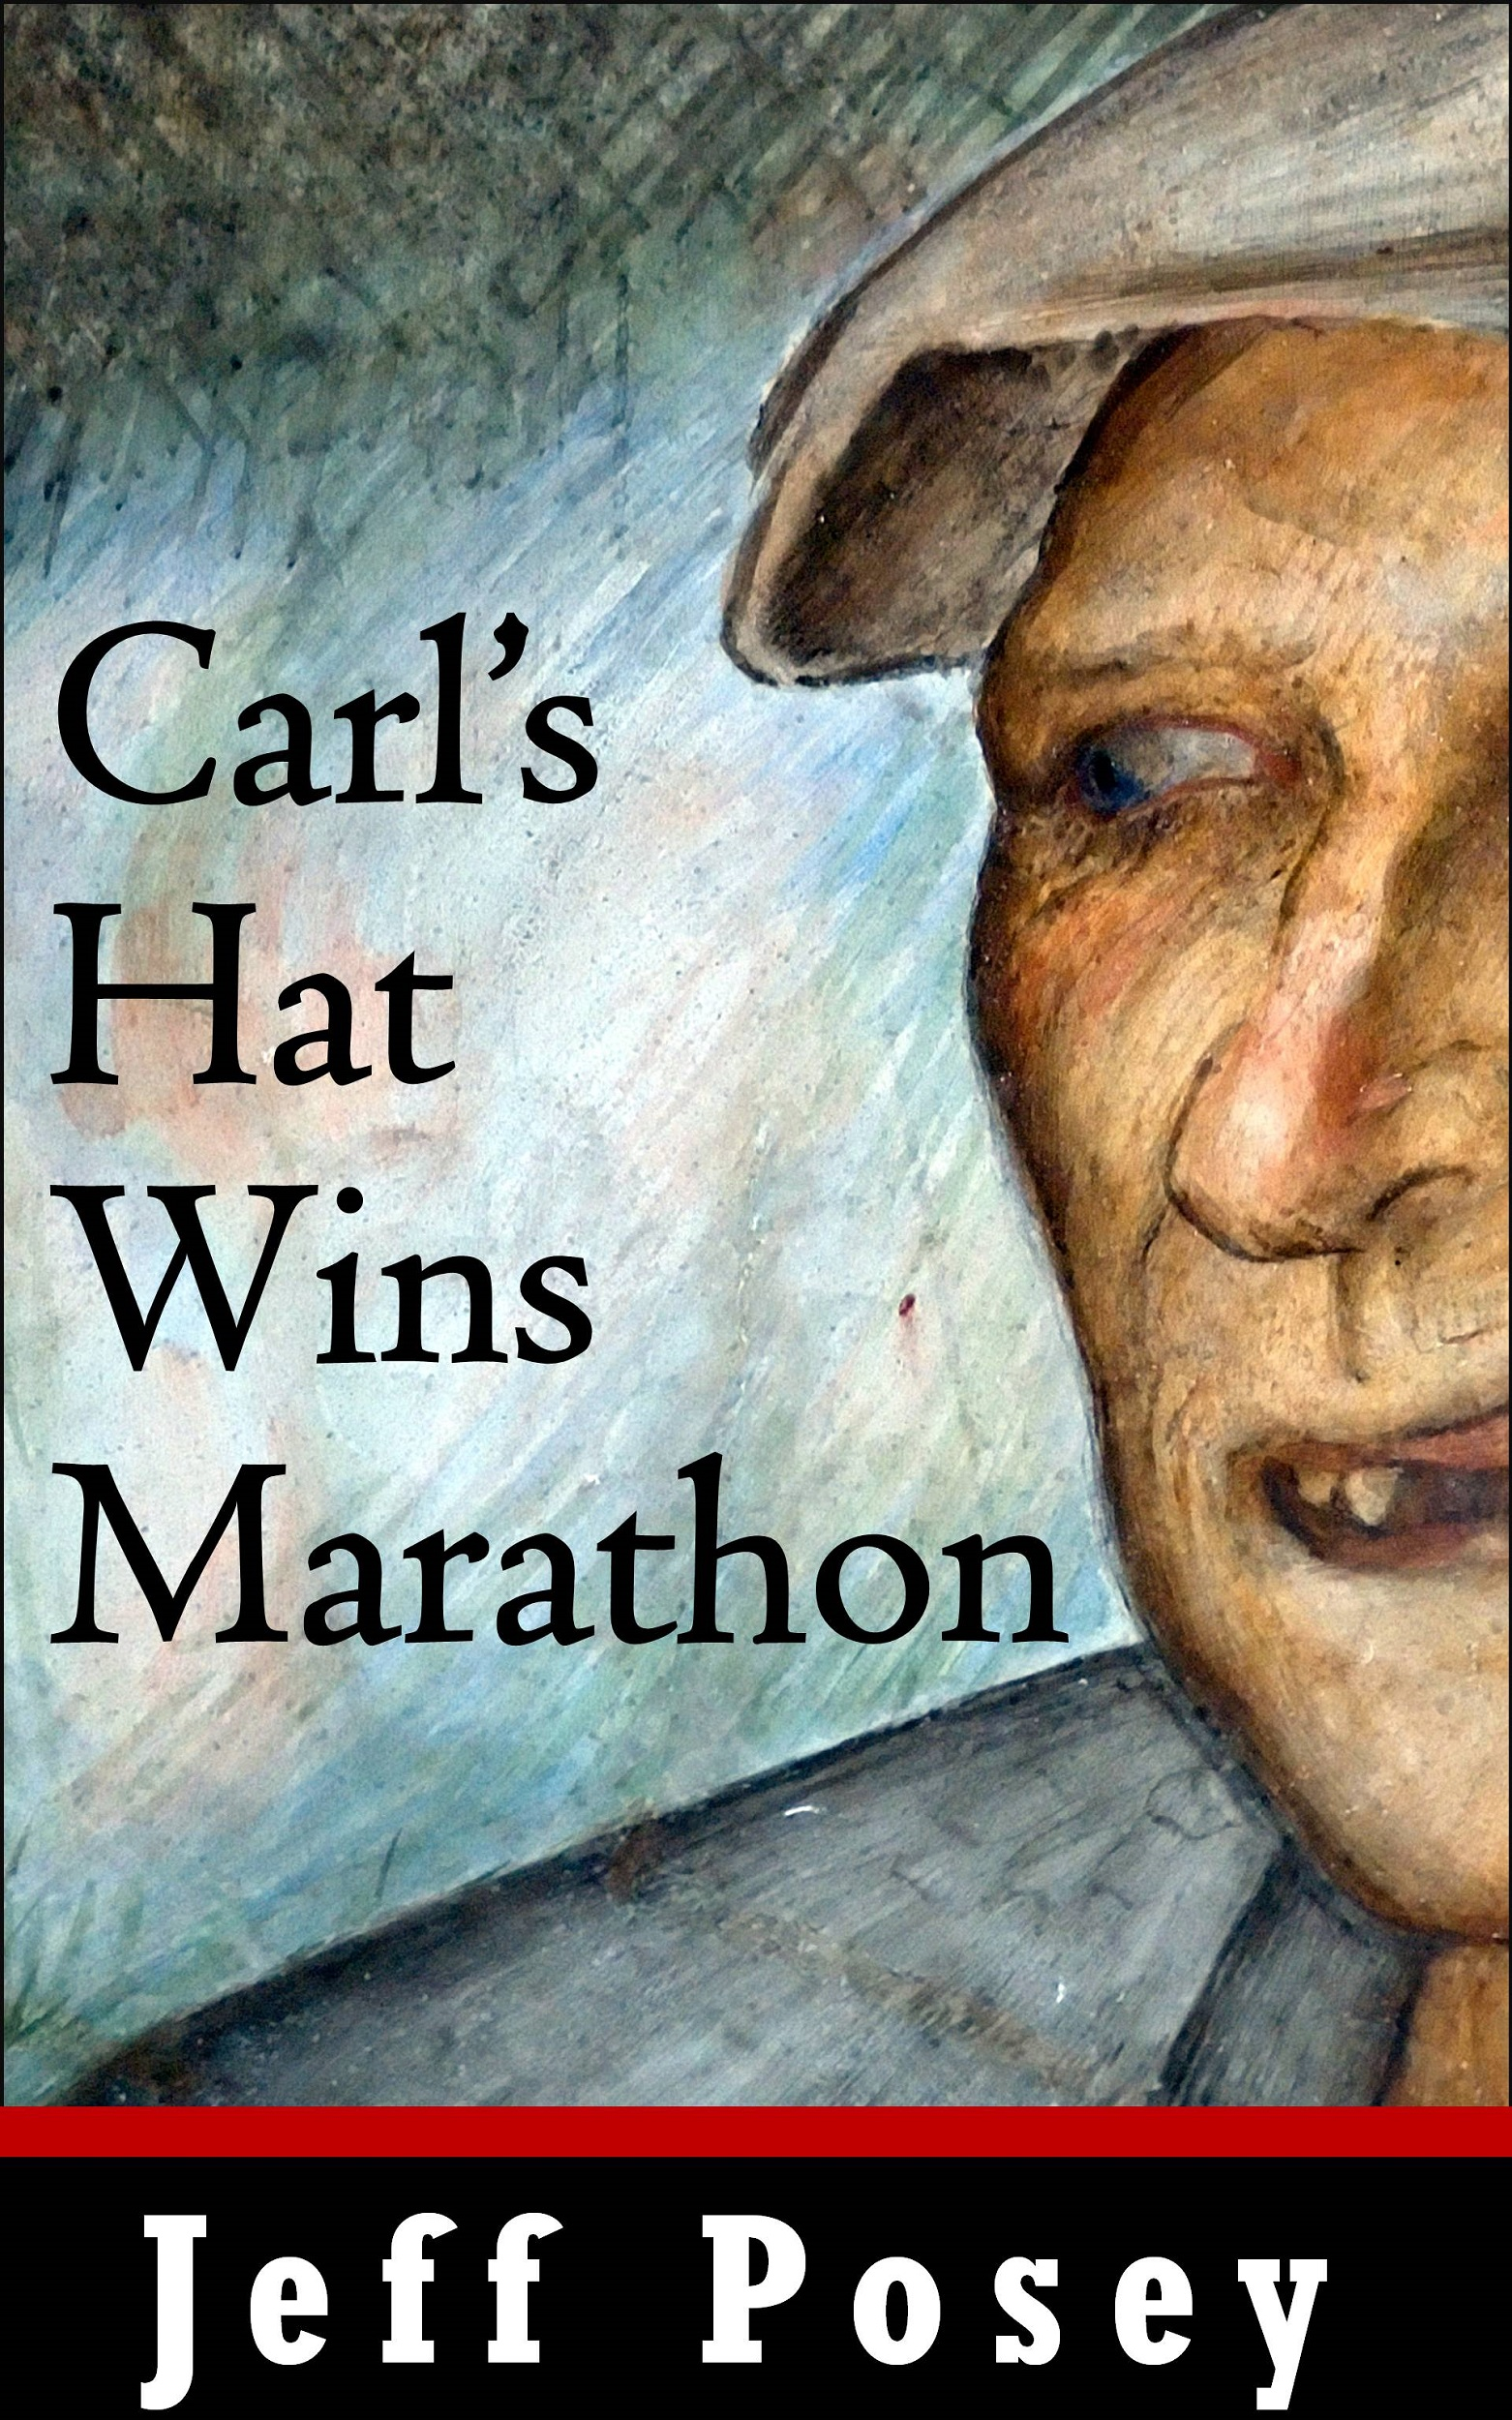 Carl's Hat Wins Marathon